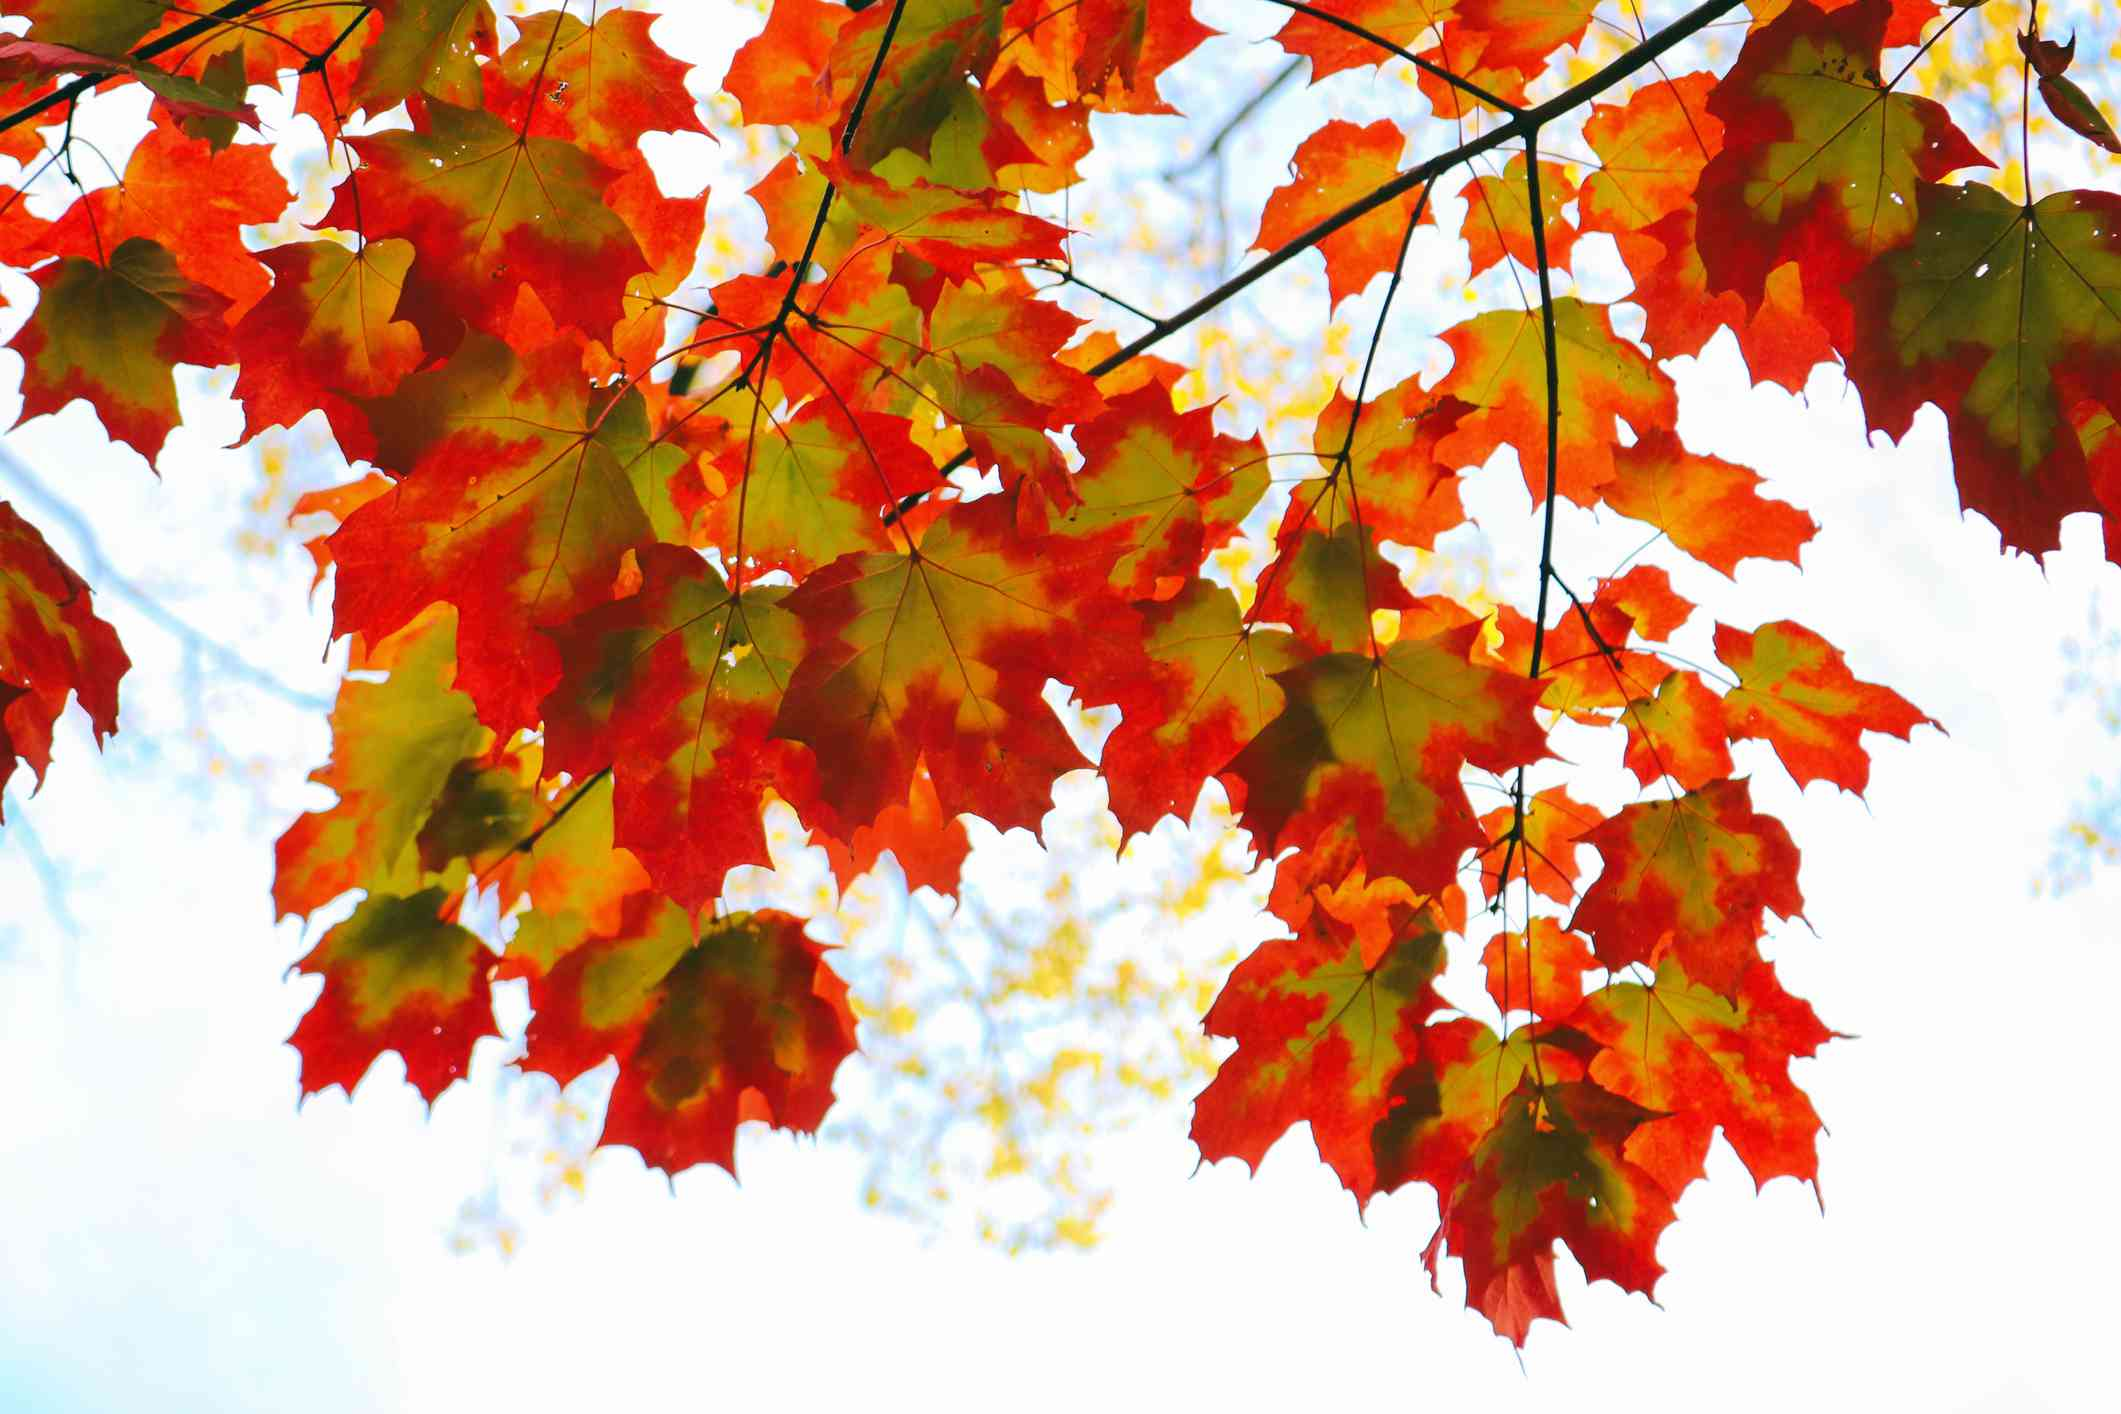 Red maple leaves against the sky.